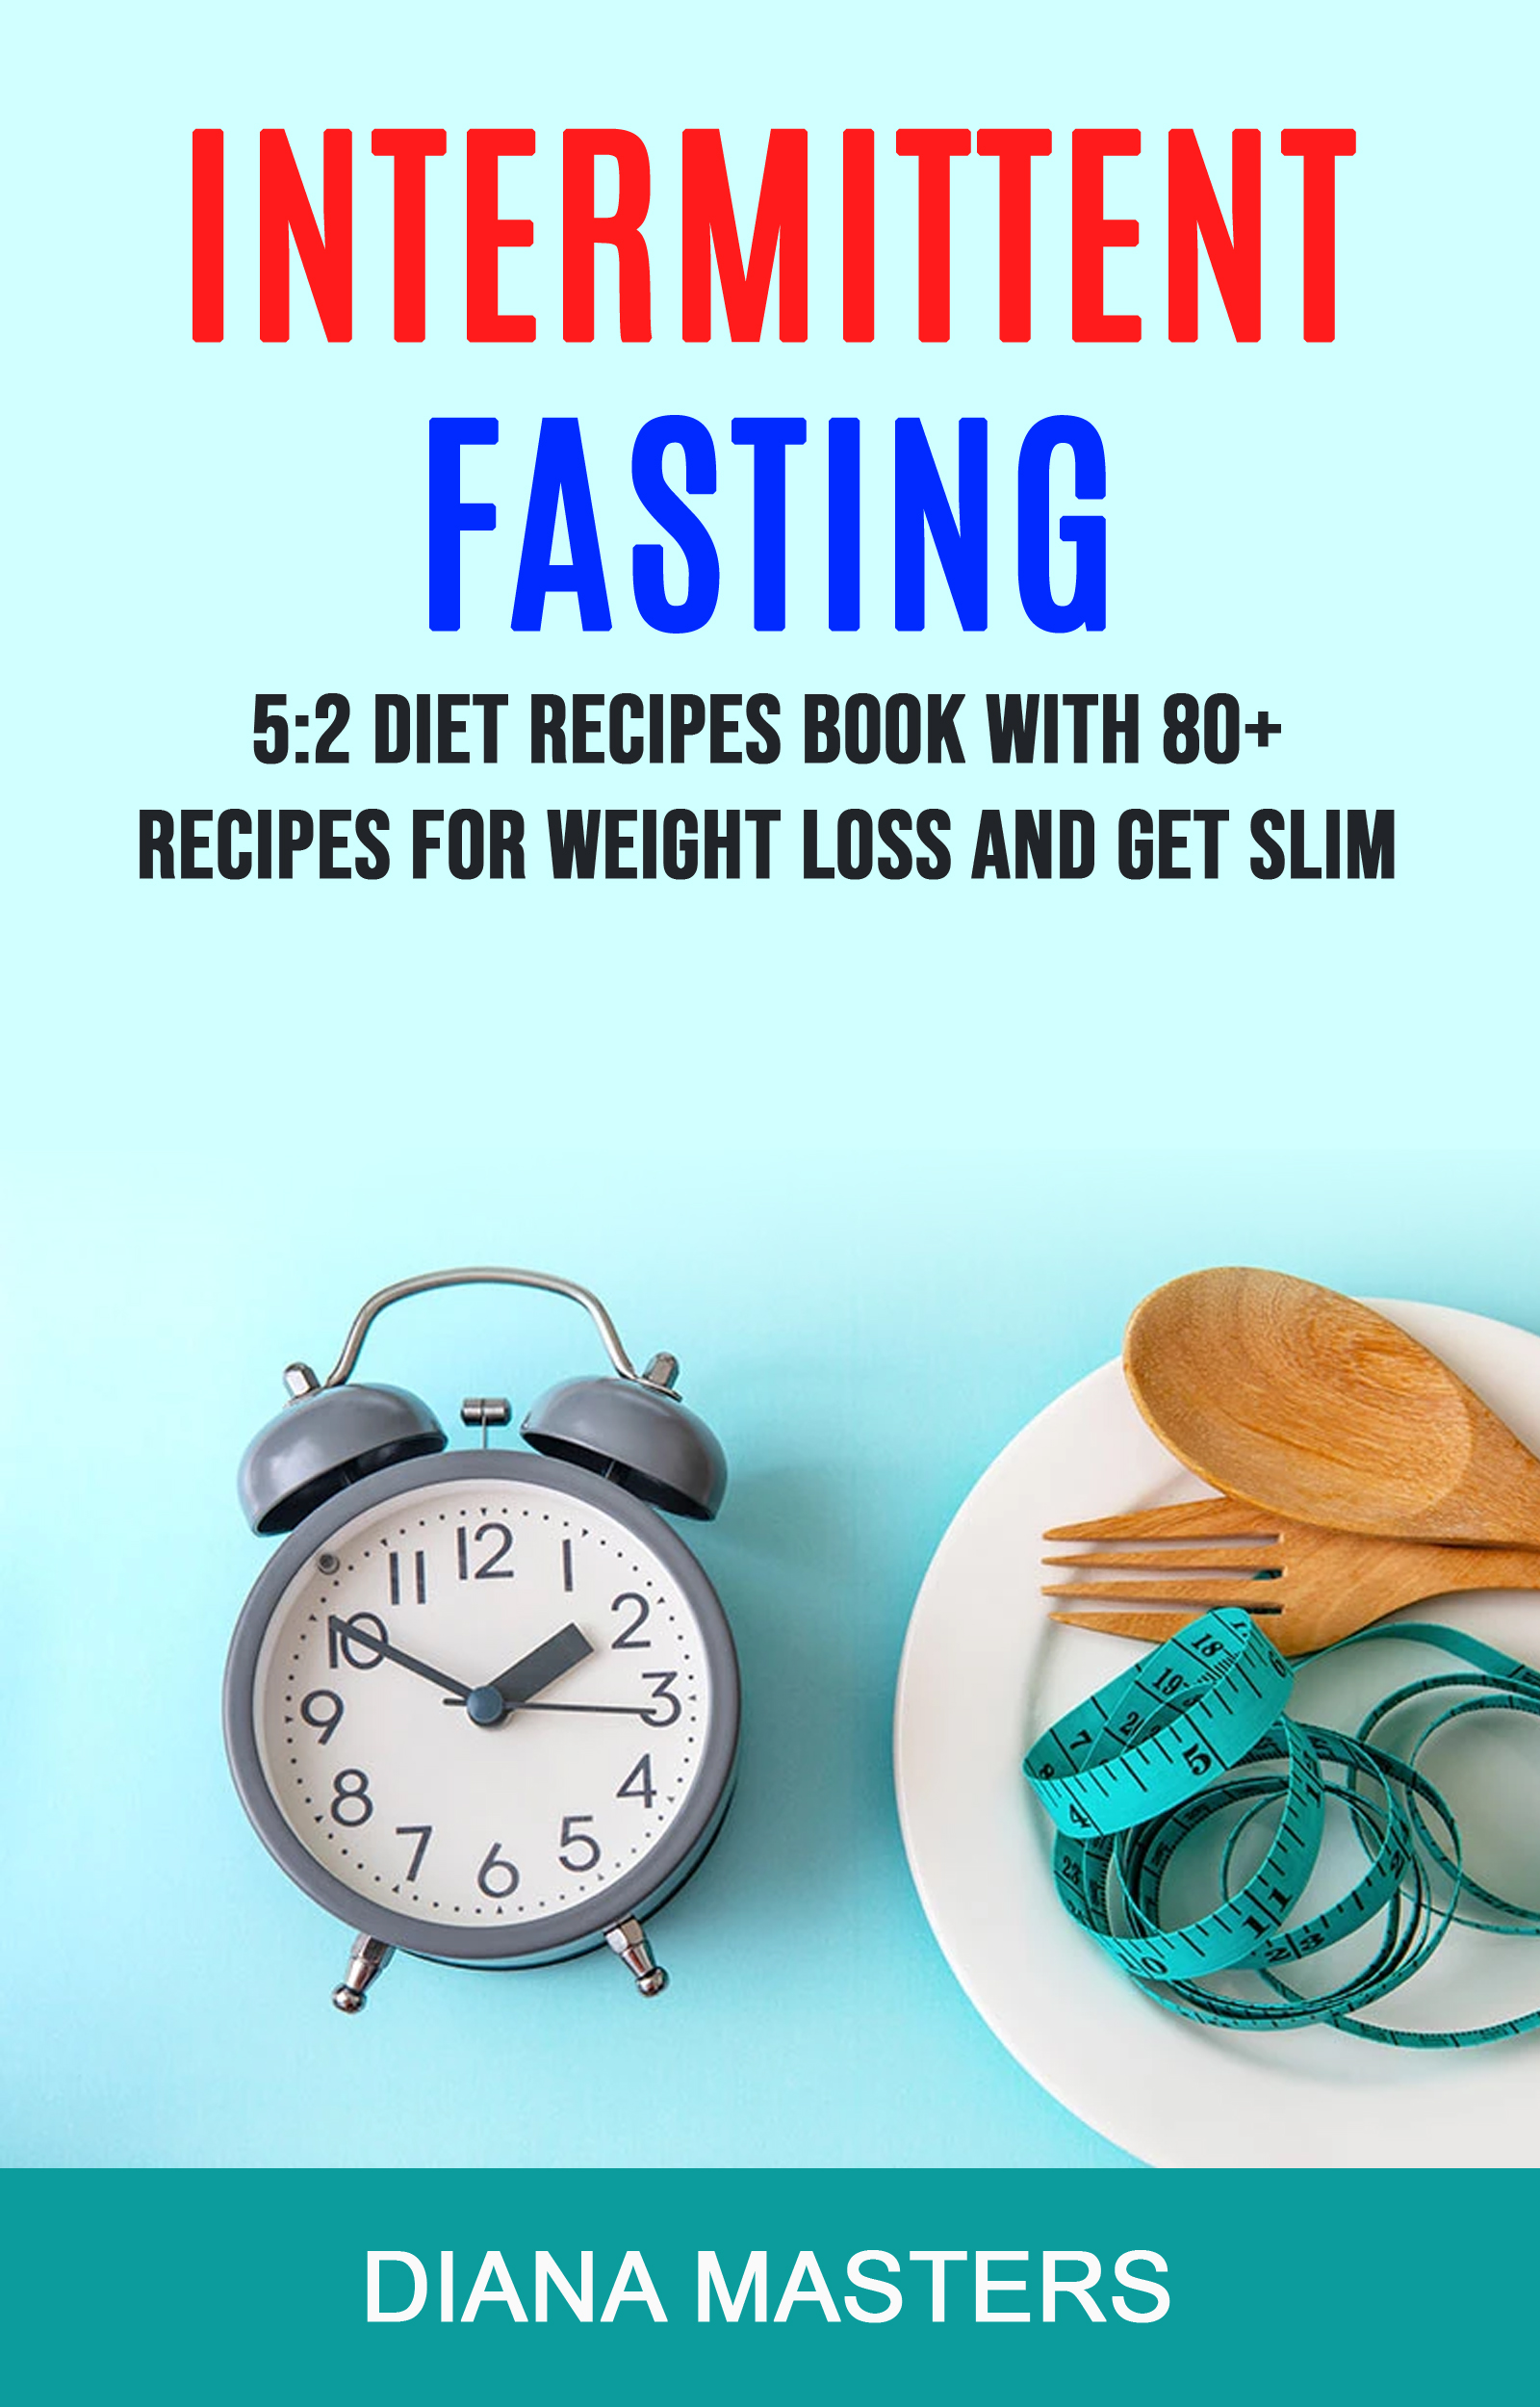 Intermittent fasting: 5:2 diet recipes book with 80+ recipes for weight loss and get slim